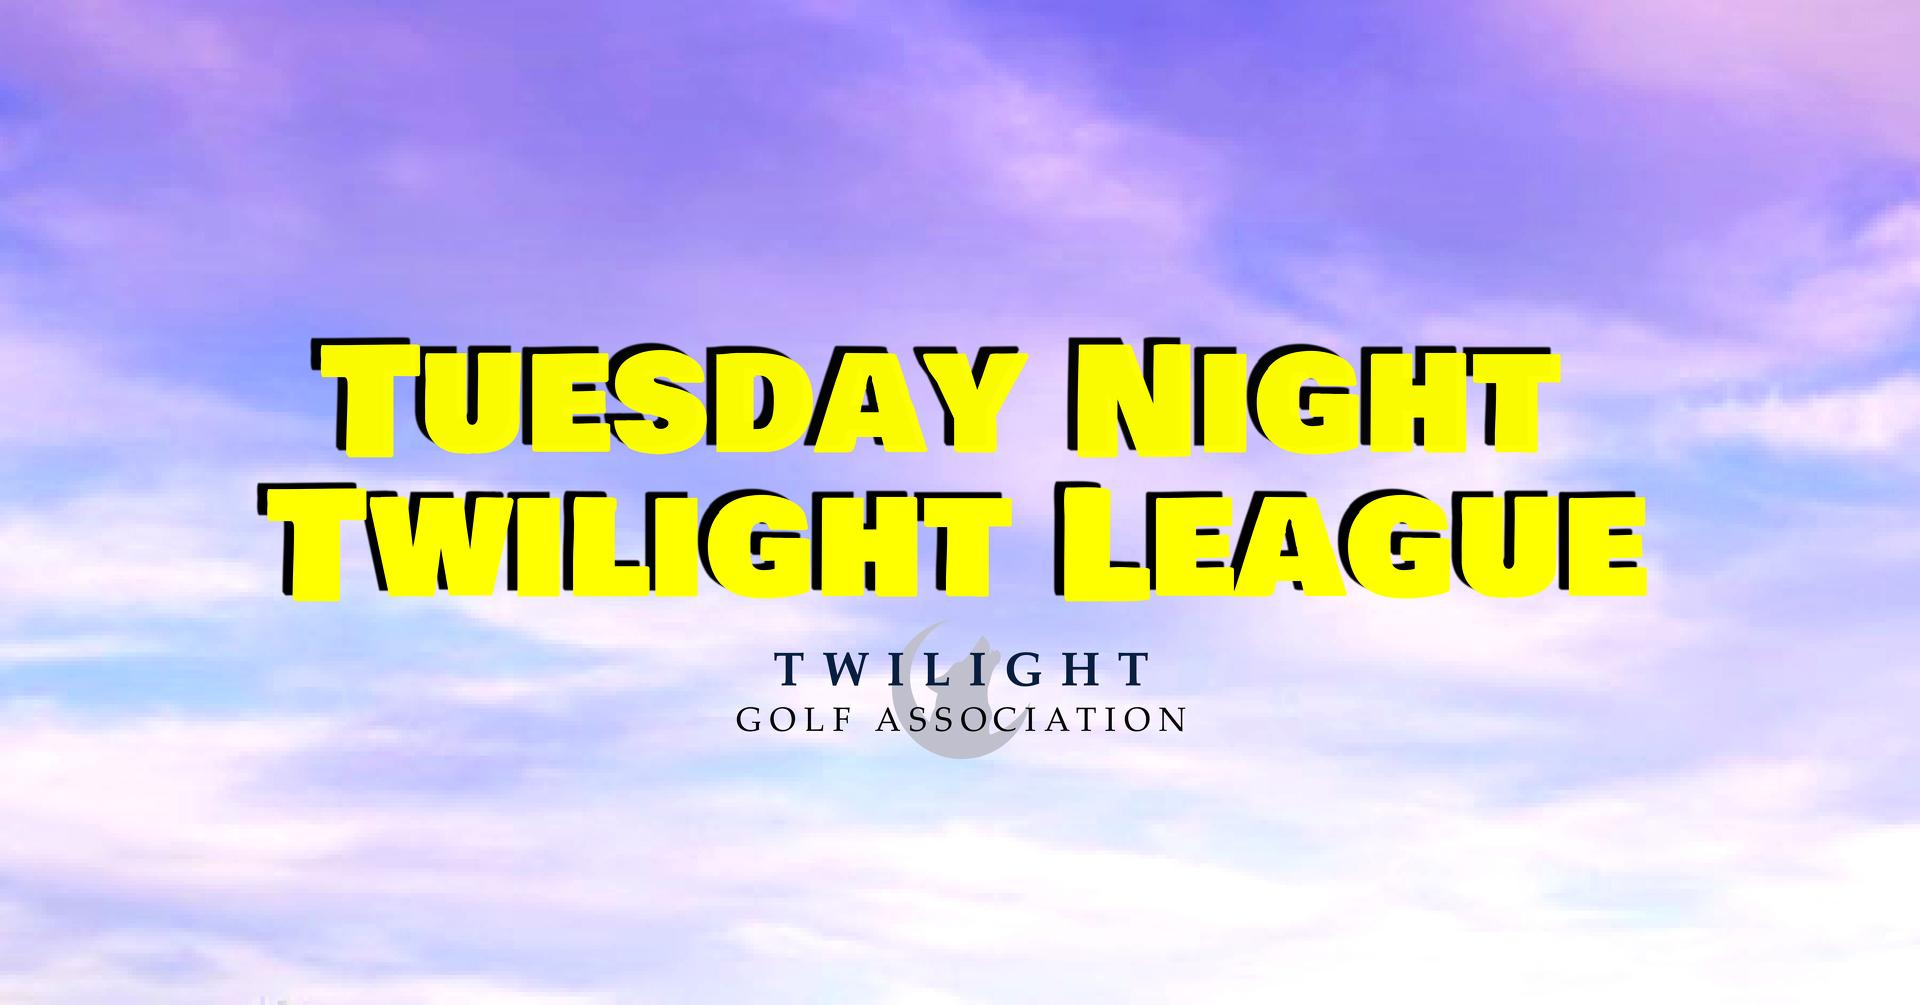 Tuesday Twilight League at Duck Creek Golf Course